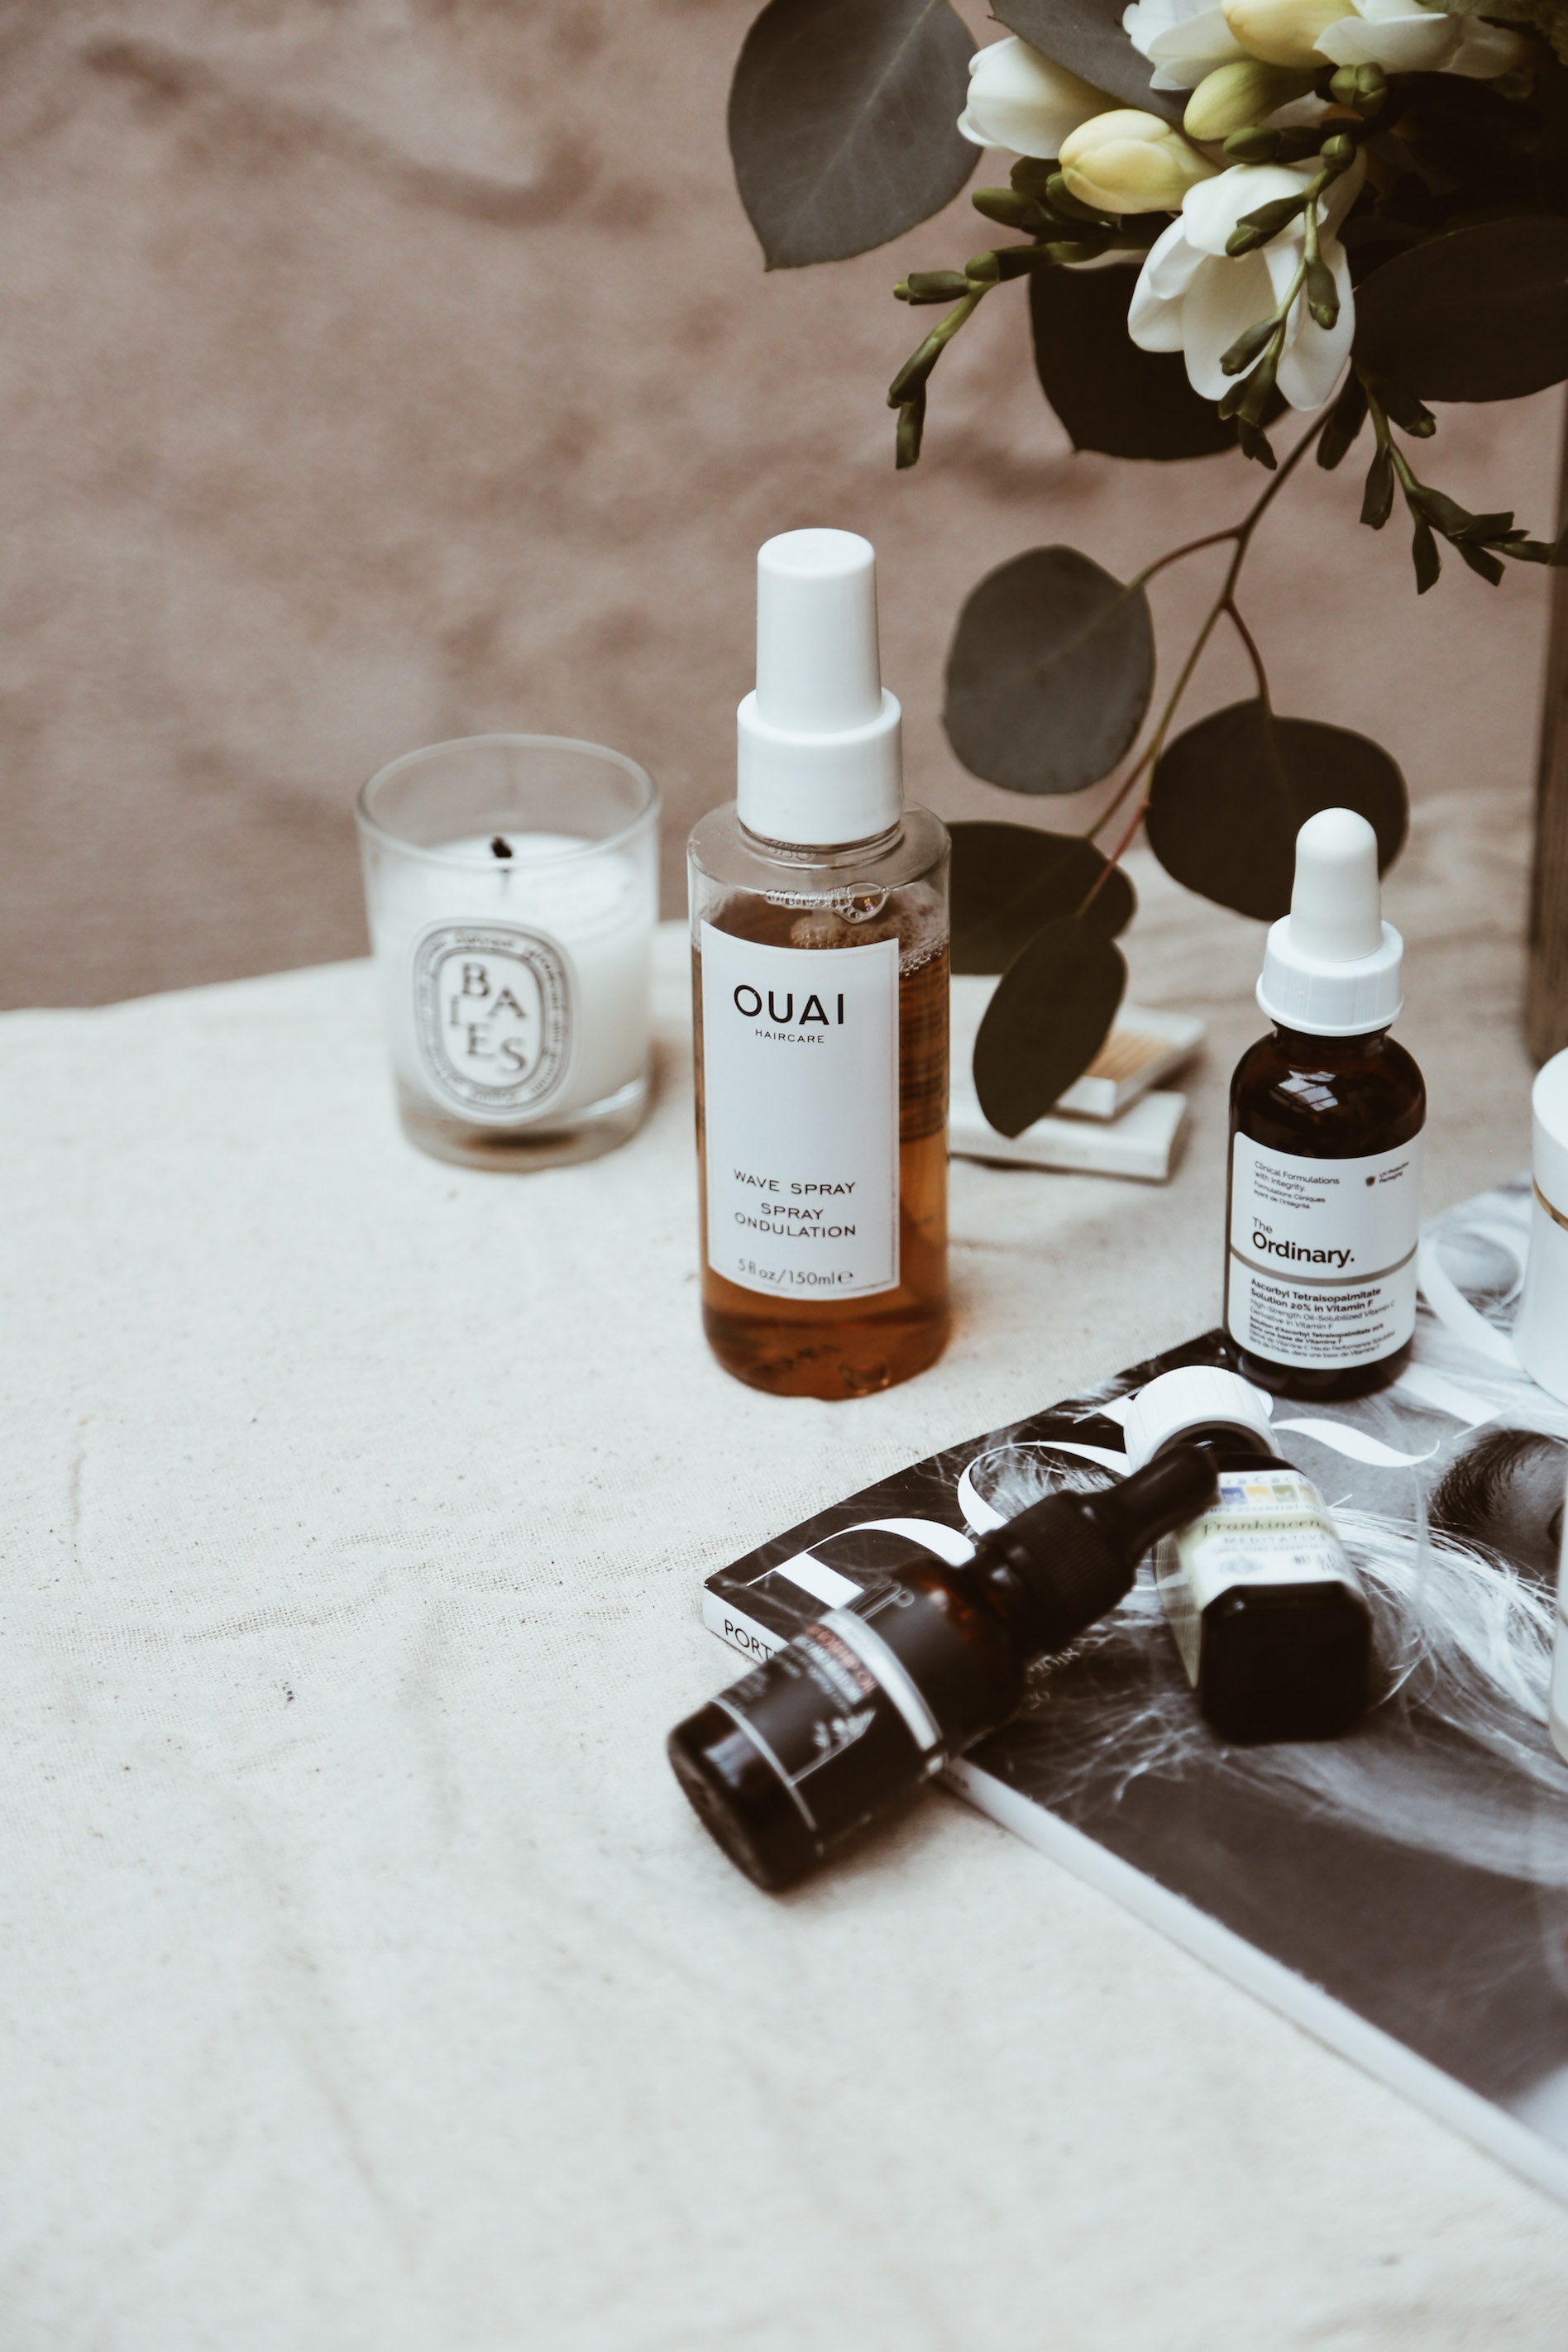 HEAD GAMES - Not sure what I love more about the Ouai Wave Spray- what it does to my hair, or the scent. It's by far the best wave spray I've ever used (it actually makes my curly hair wavy, without being sticky), and no joke, sometimes I spray it on my hair instead of wearing perfume because it smells that good!Speaking of scents and things having to do with our heads, I've recently been using Aura Cacia's frankincense essential oil to help with my headaches and migraines. Our yoga instructor in Cabo gave me the tip, and it is by far one of the best things I've ever used to help my migraines. Just a few drops on my temples and the pain disappears faster than I can say